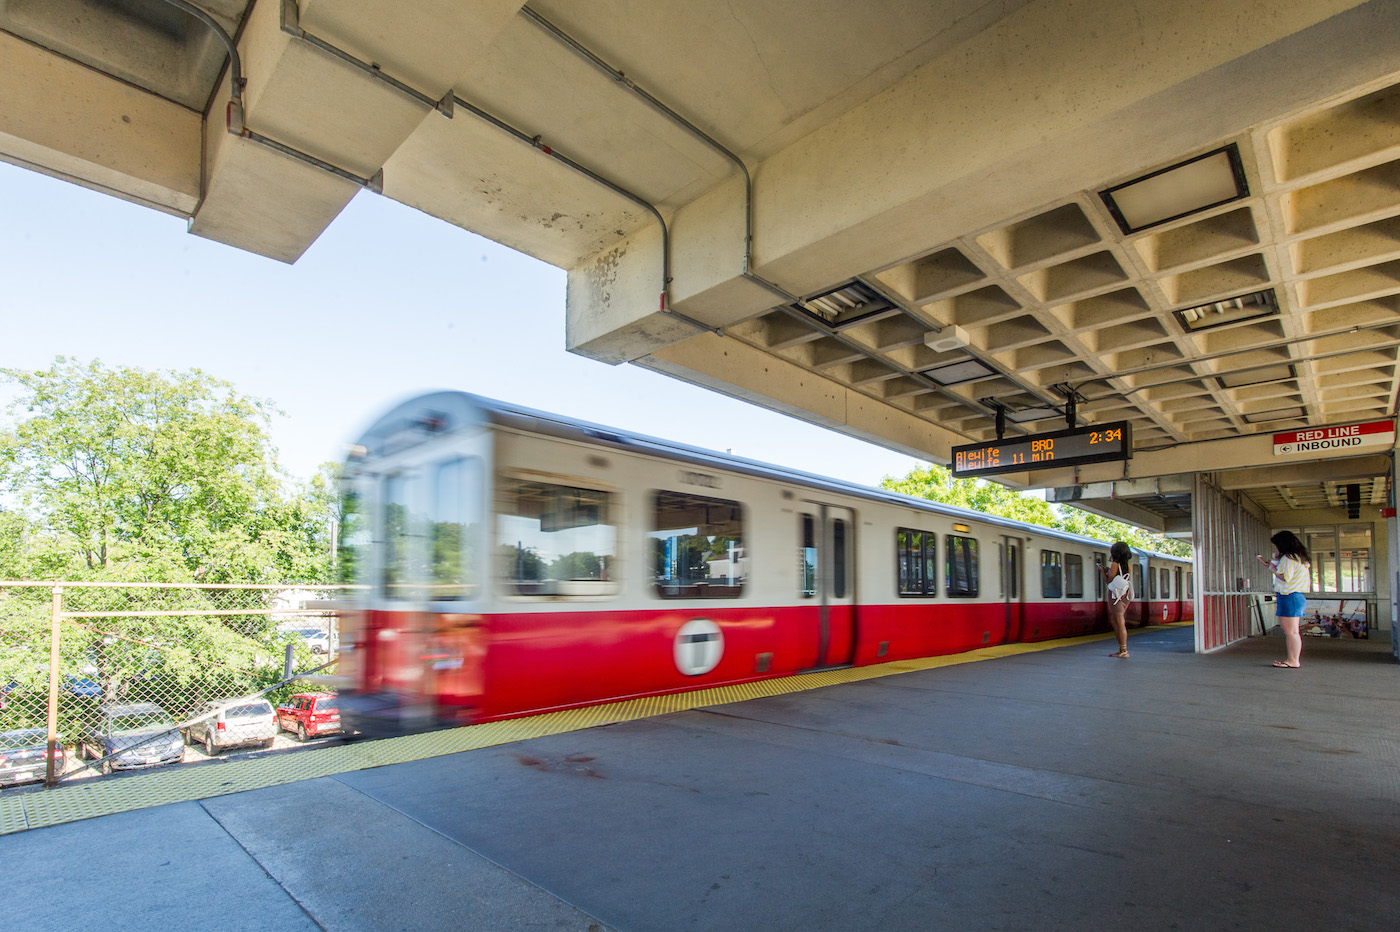 Red Line train departing from Wollaston Station during the day